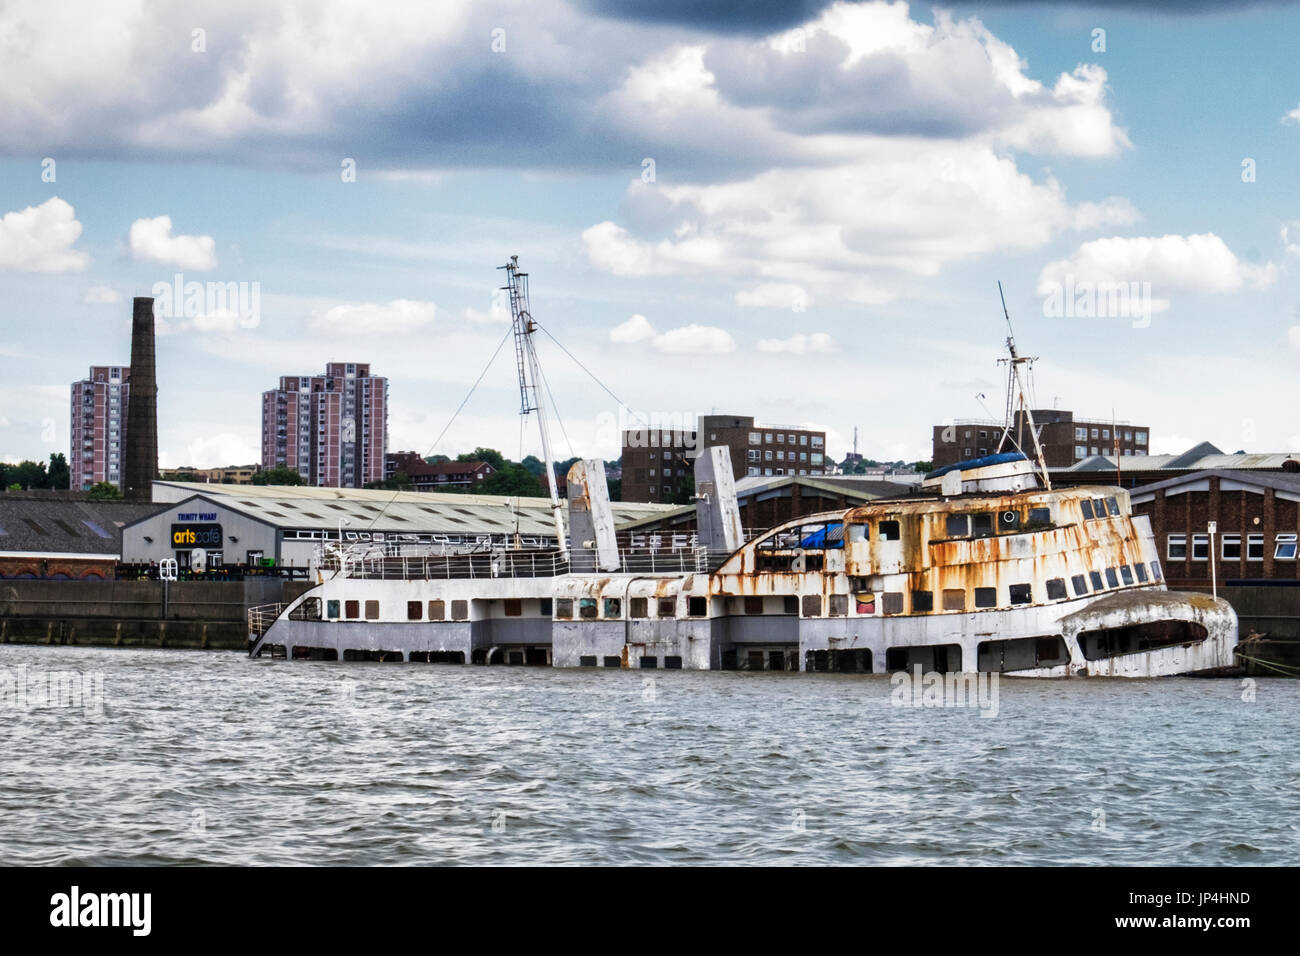 London,Woolwich.The MV Royal Iris Ferry which carried people across the River Mersey in Liverpool for years sinks,Thames river sinking vessel,Rusty ab - Stock Image